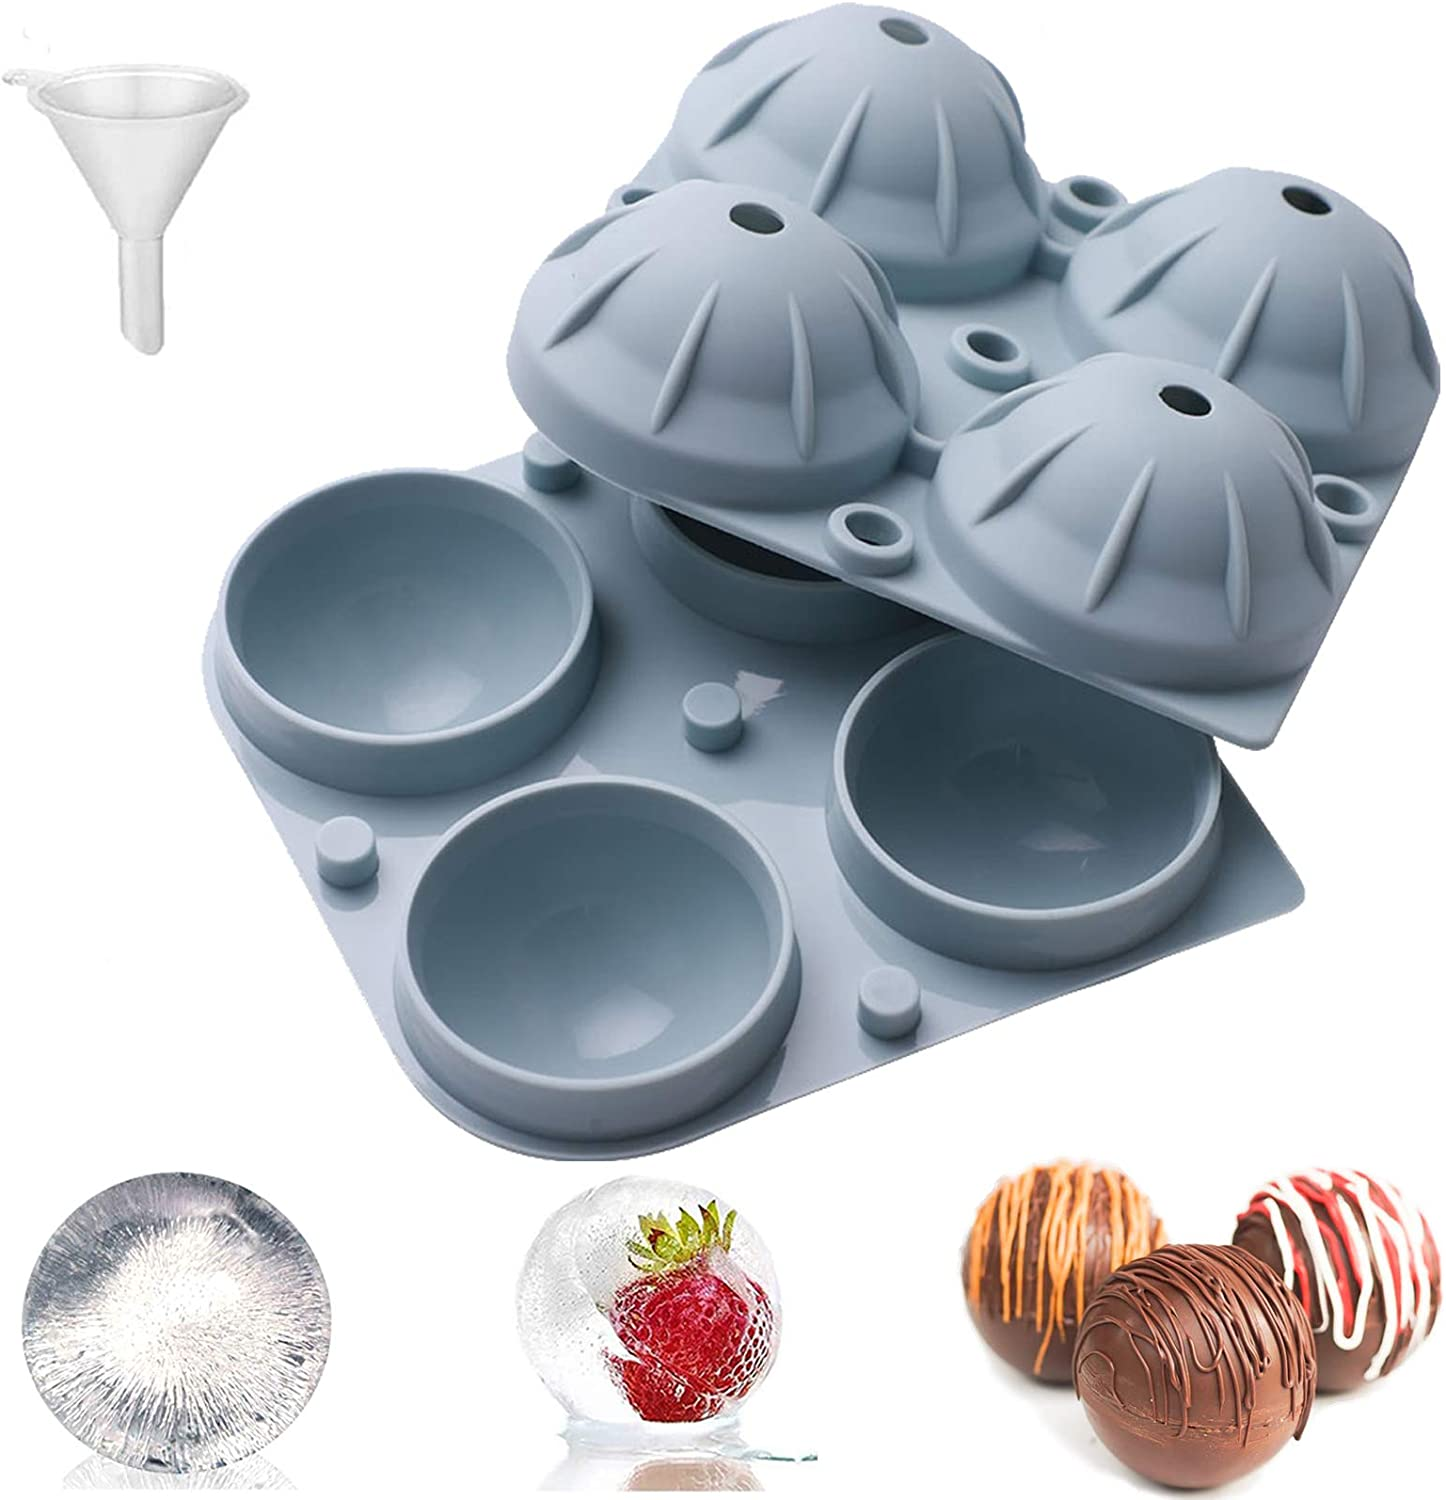 Silicone Ice Sphere Mold, Sphere Whiskey Ice Ball Maker Mold Easy Release Food Grade Flexible Round Ice Cube Mold 4 Cavity with Lids for Whiskey, Cocktails, Fruit Drinks Reusable and Easy to clean